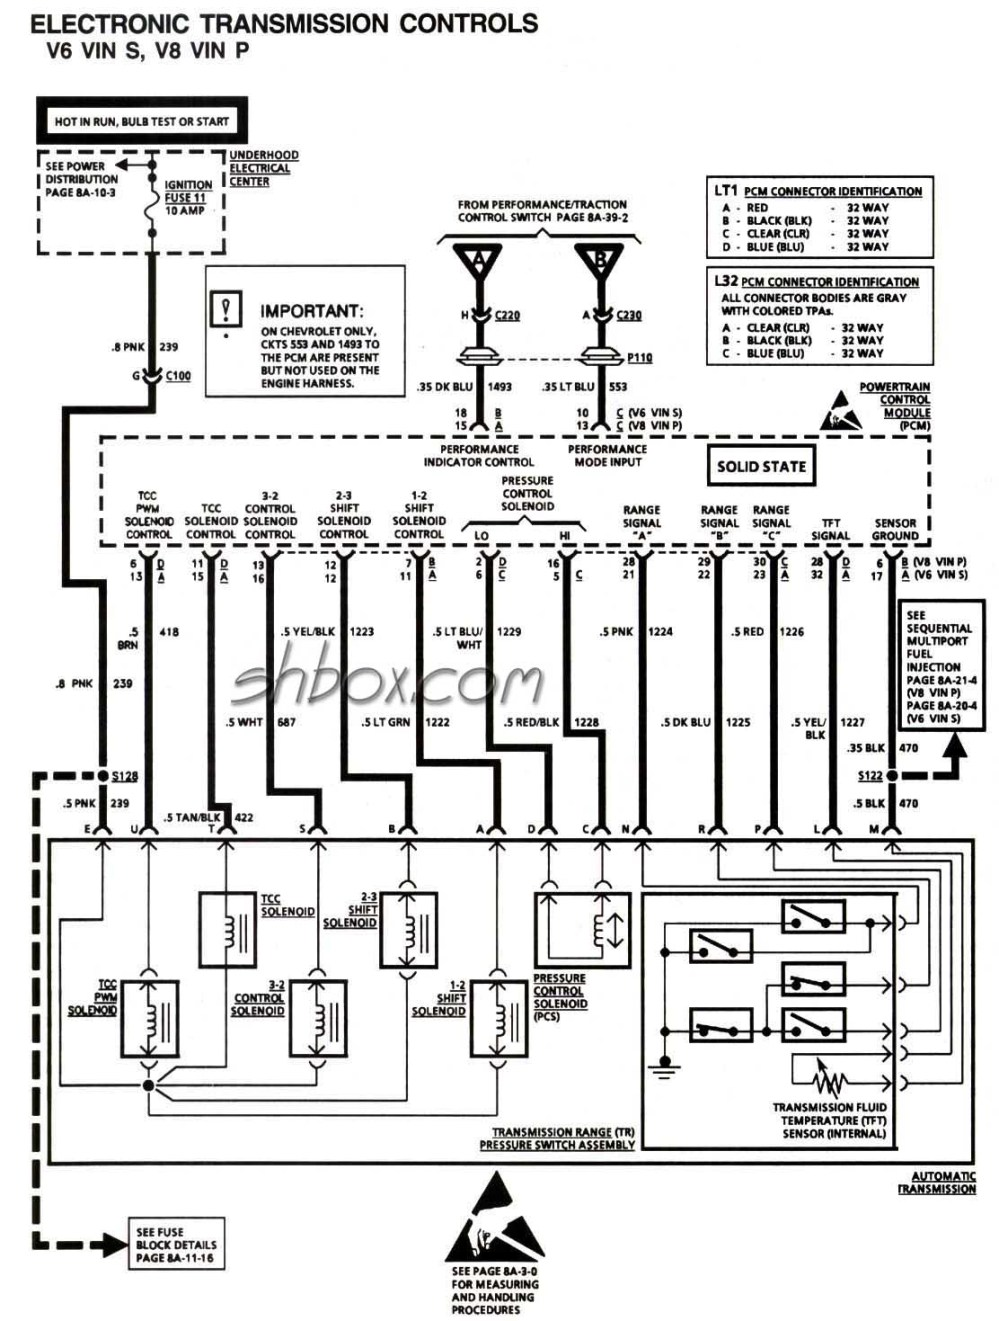 medium resolution of 99 camaro fuse diagram electrical wiring diagram 4th gen lt1 f body tech aids 99 camaro